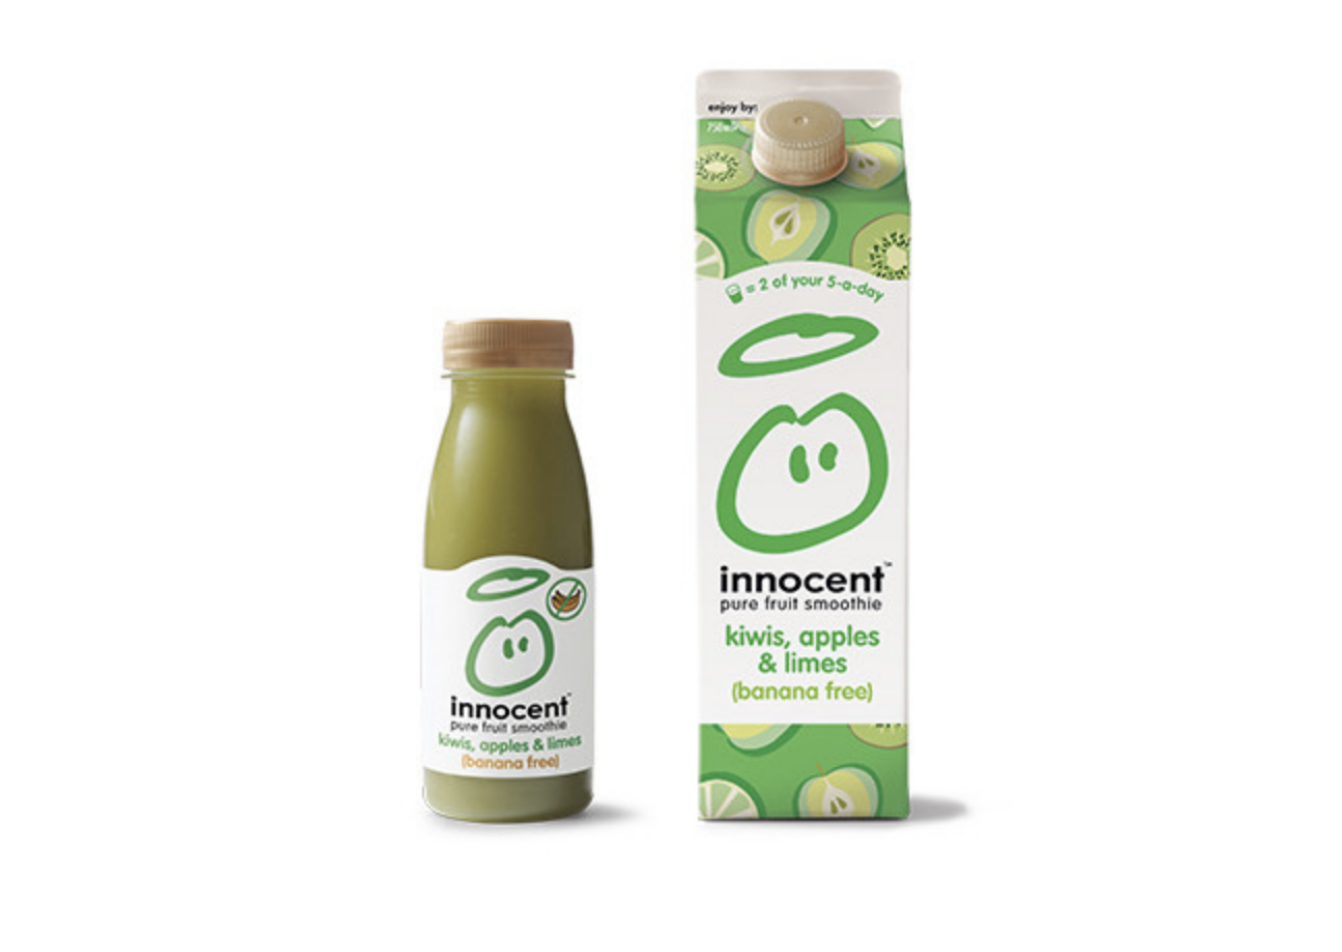 Packaging marque innocent